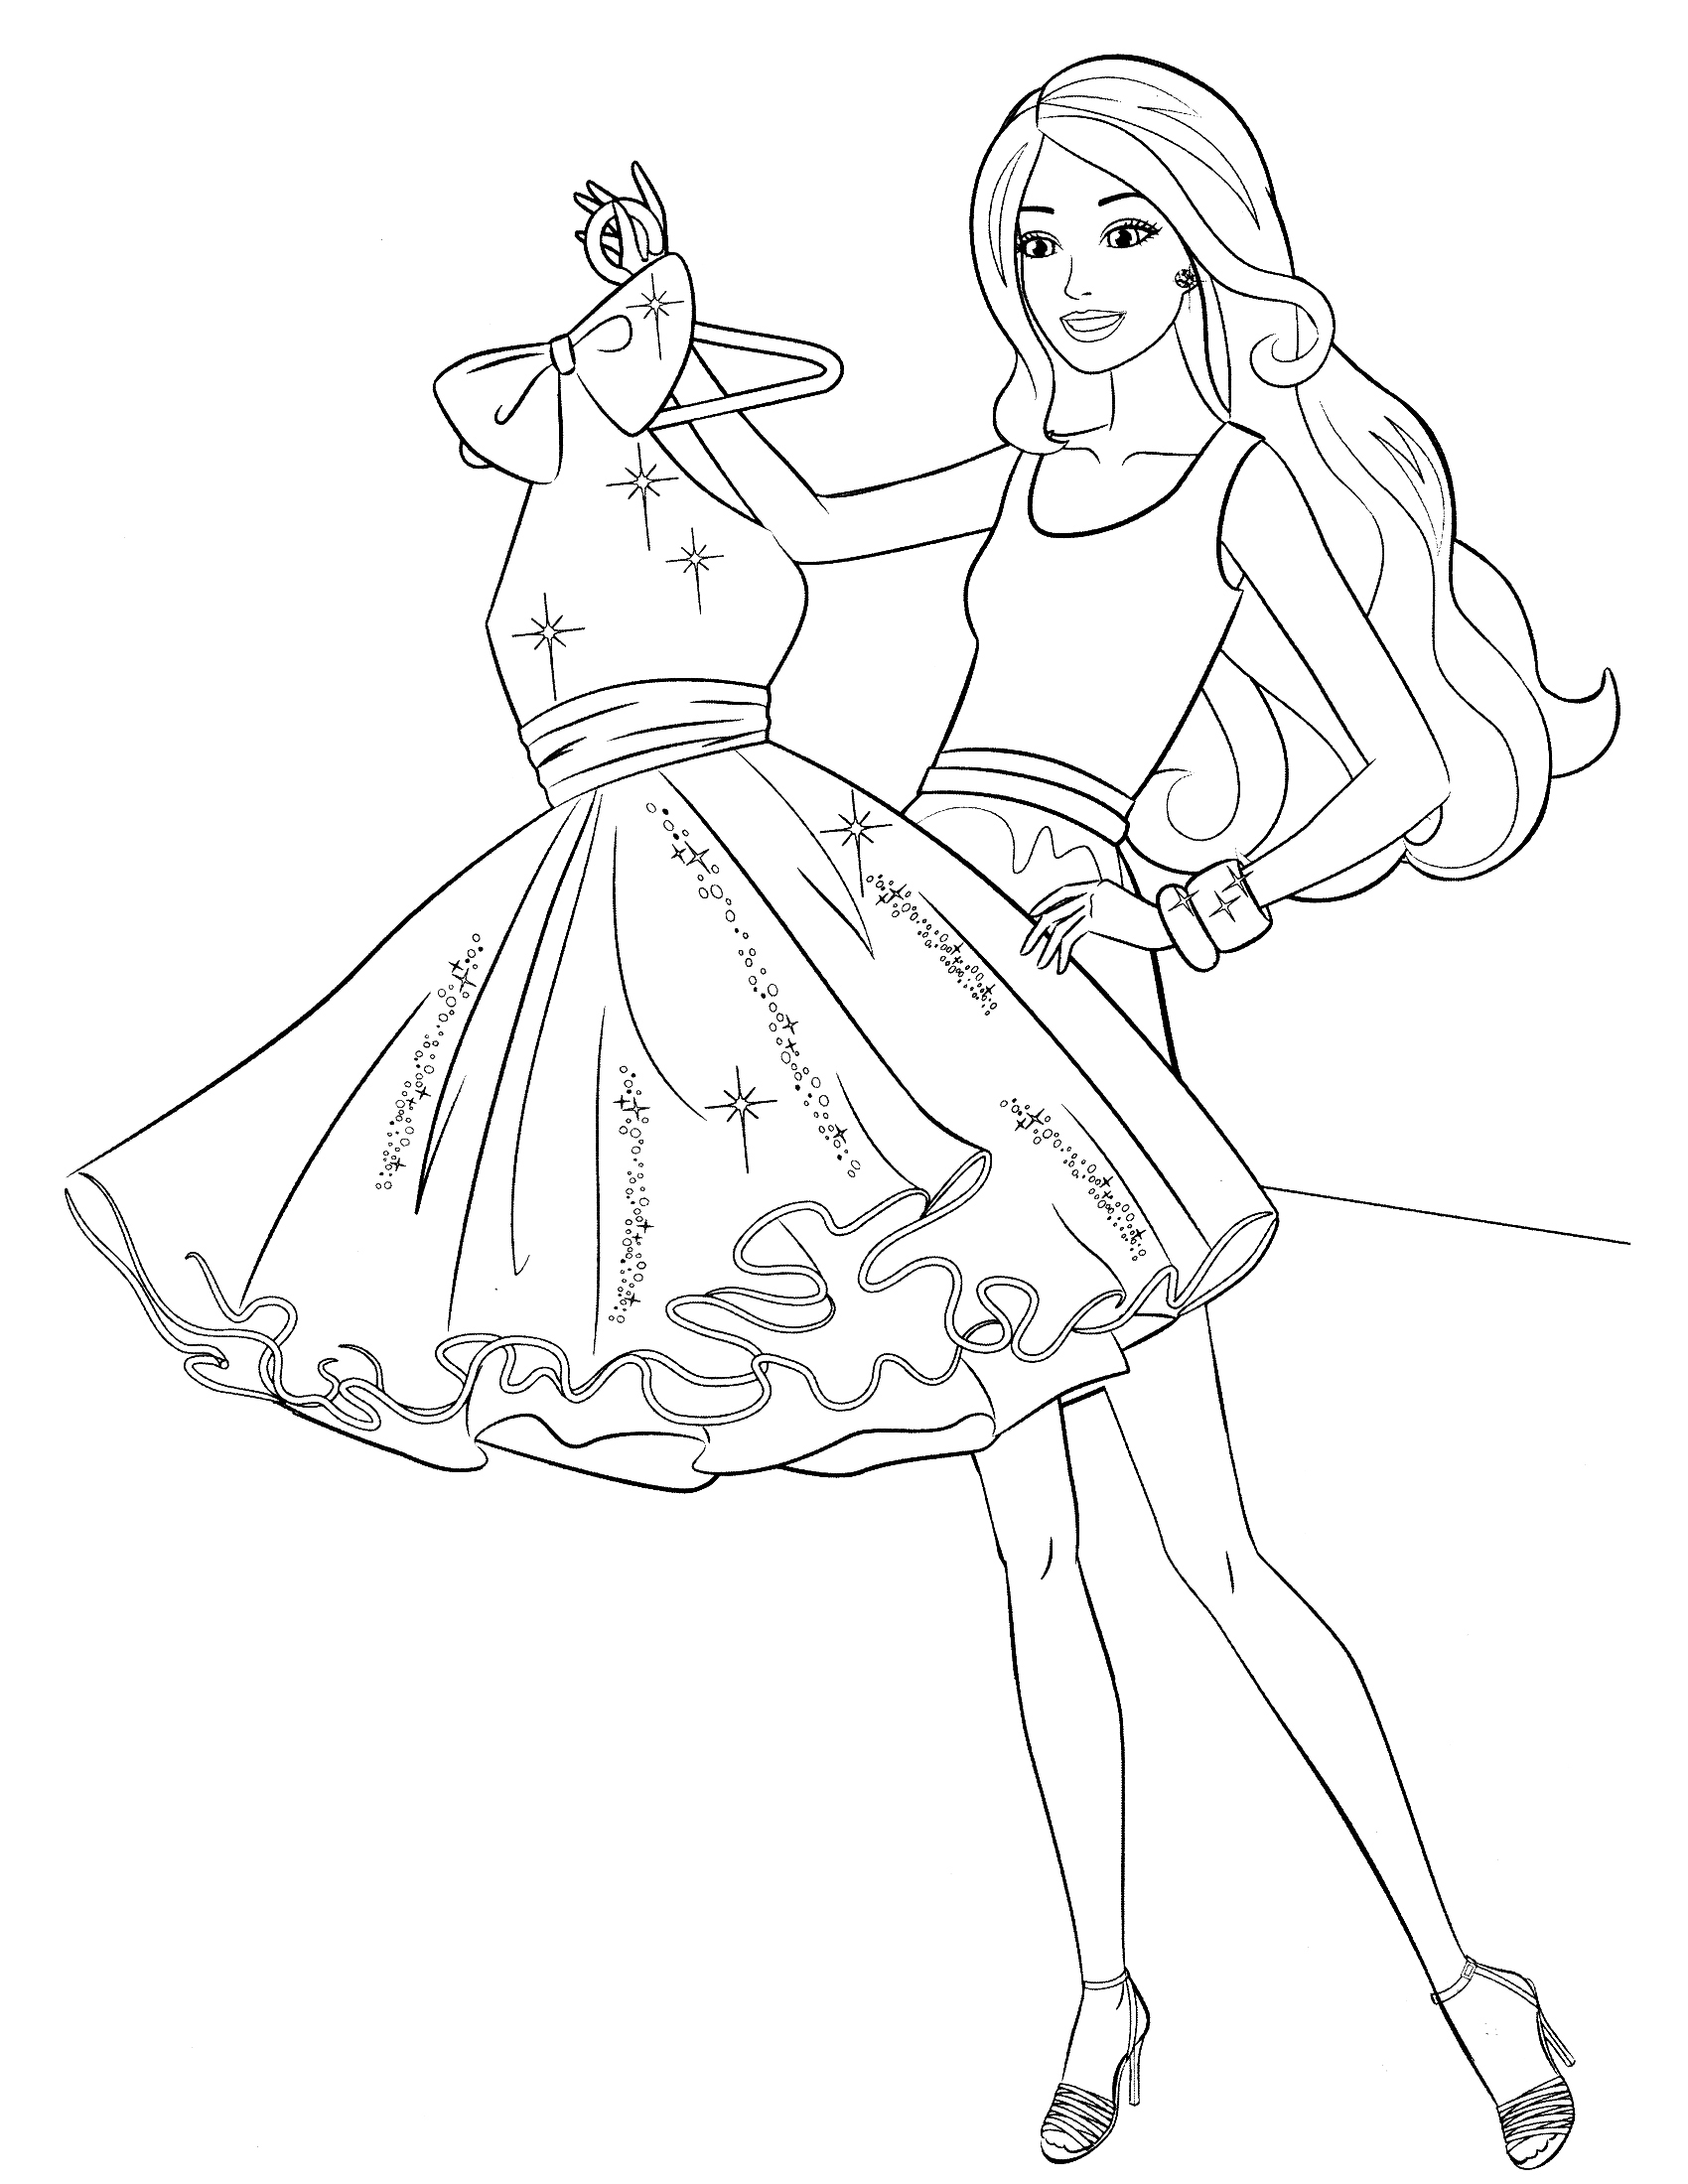 Coloriage Princesse Robe Mariee.Fresh Coloriage Robe De Mariee Luxe Coloriage Robe De Mariee